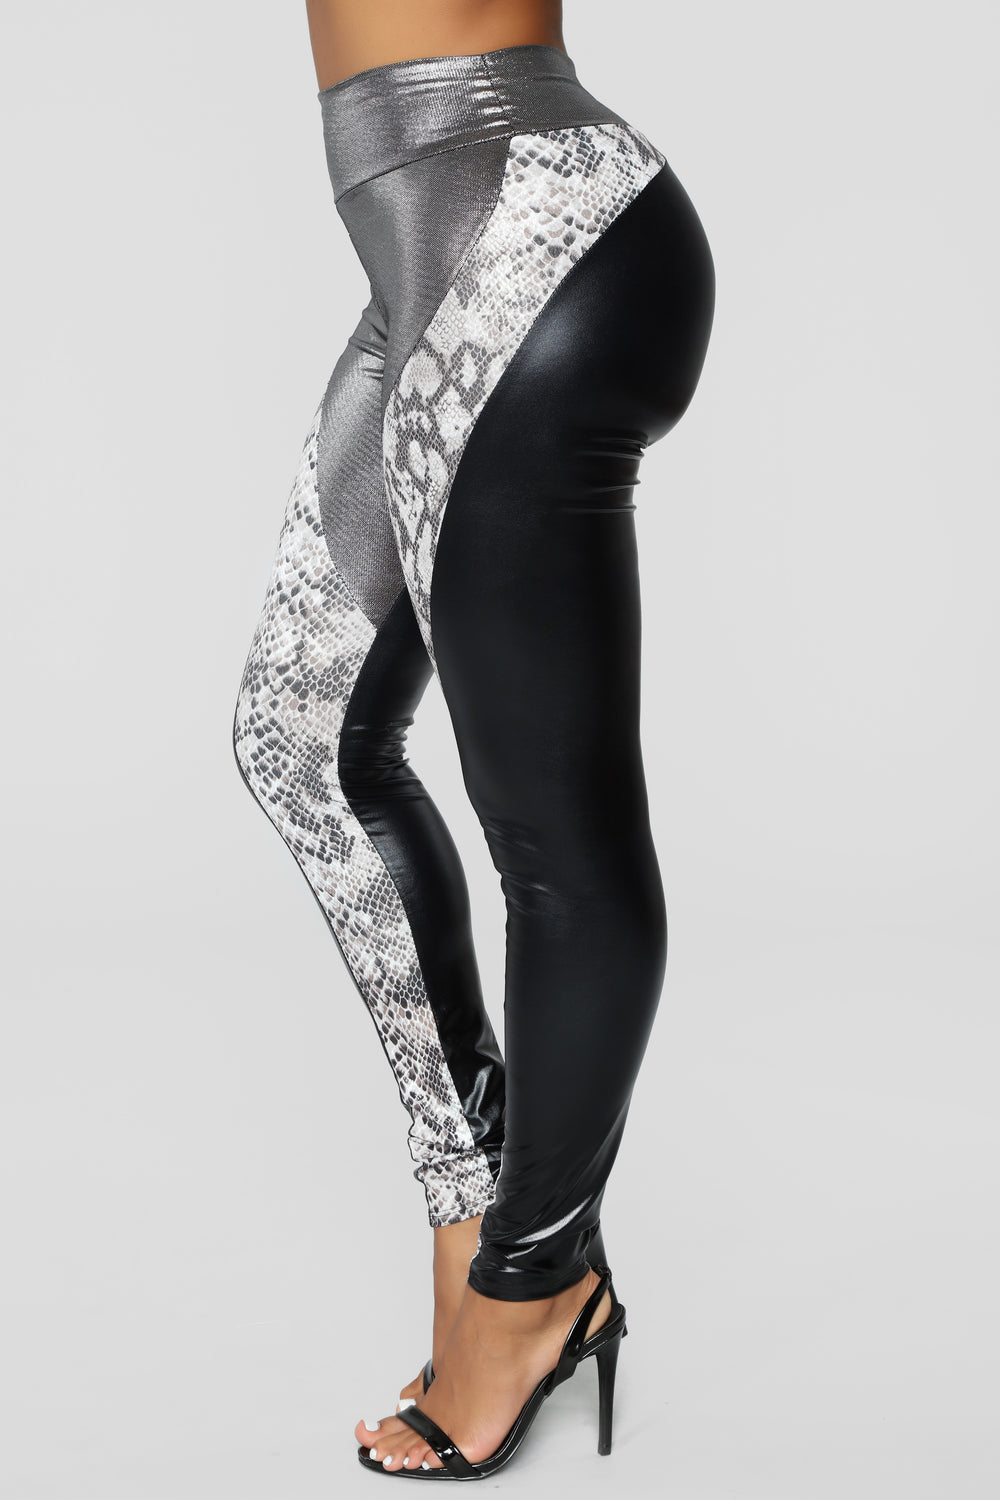 Can't Go Without It Leggings - Snake Multi